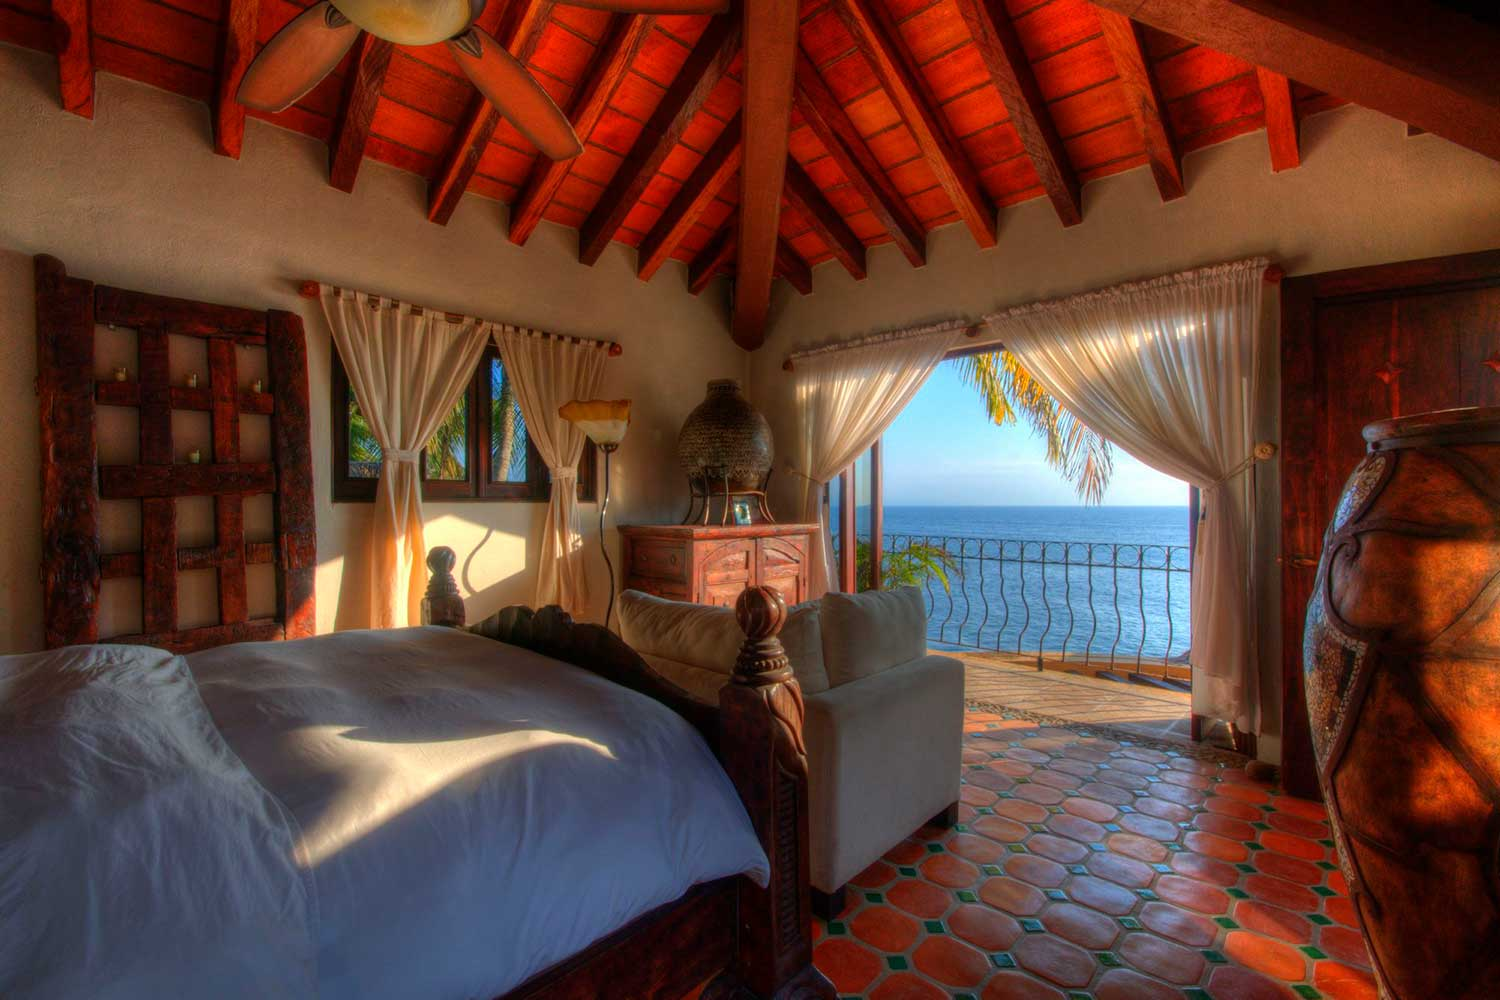 View to ocean and beach from a villa